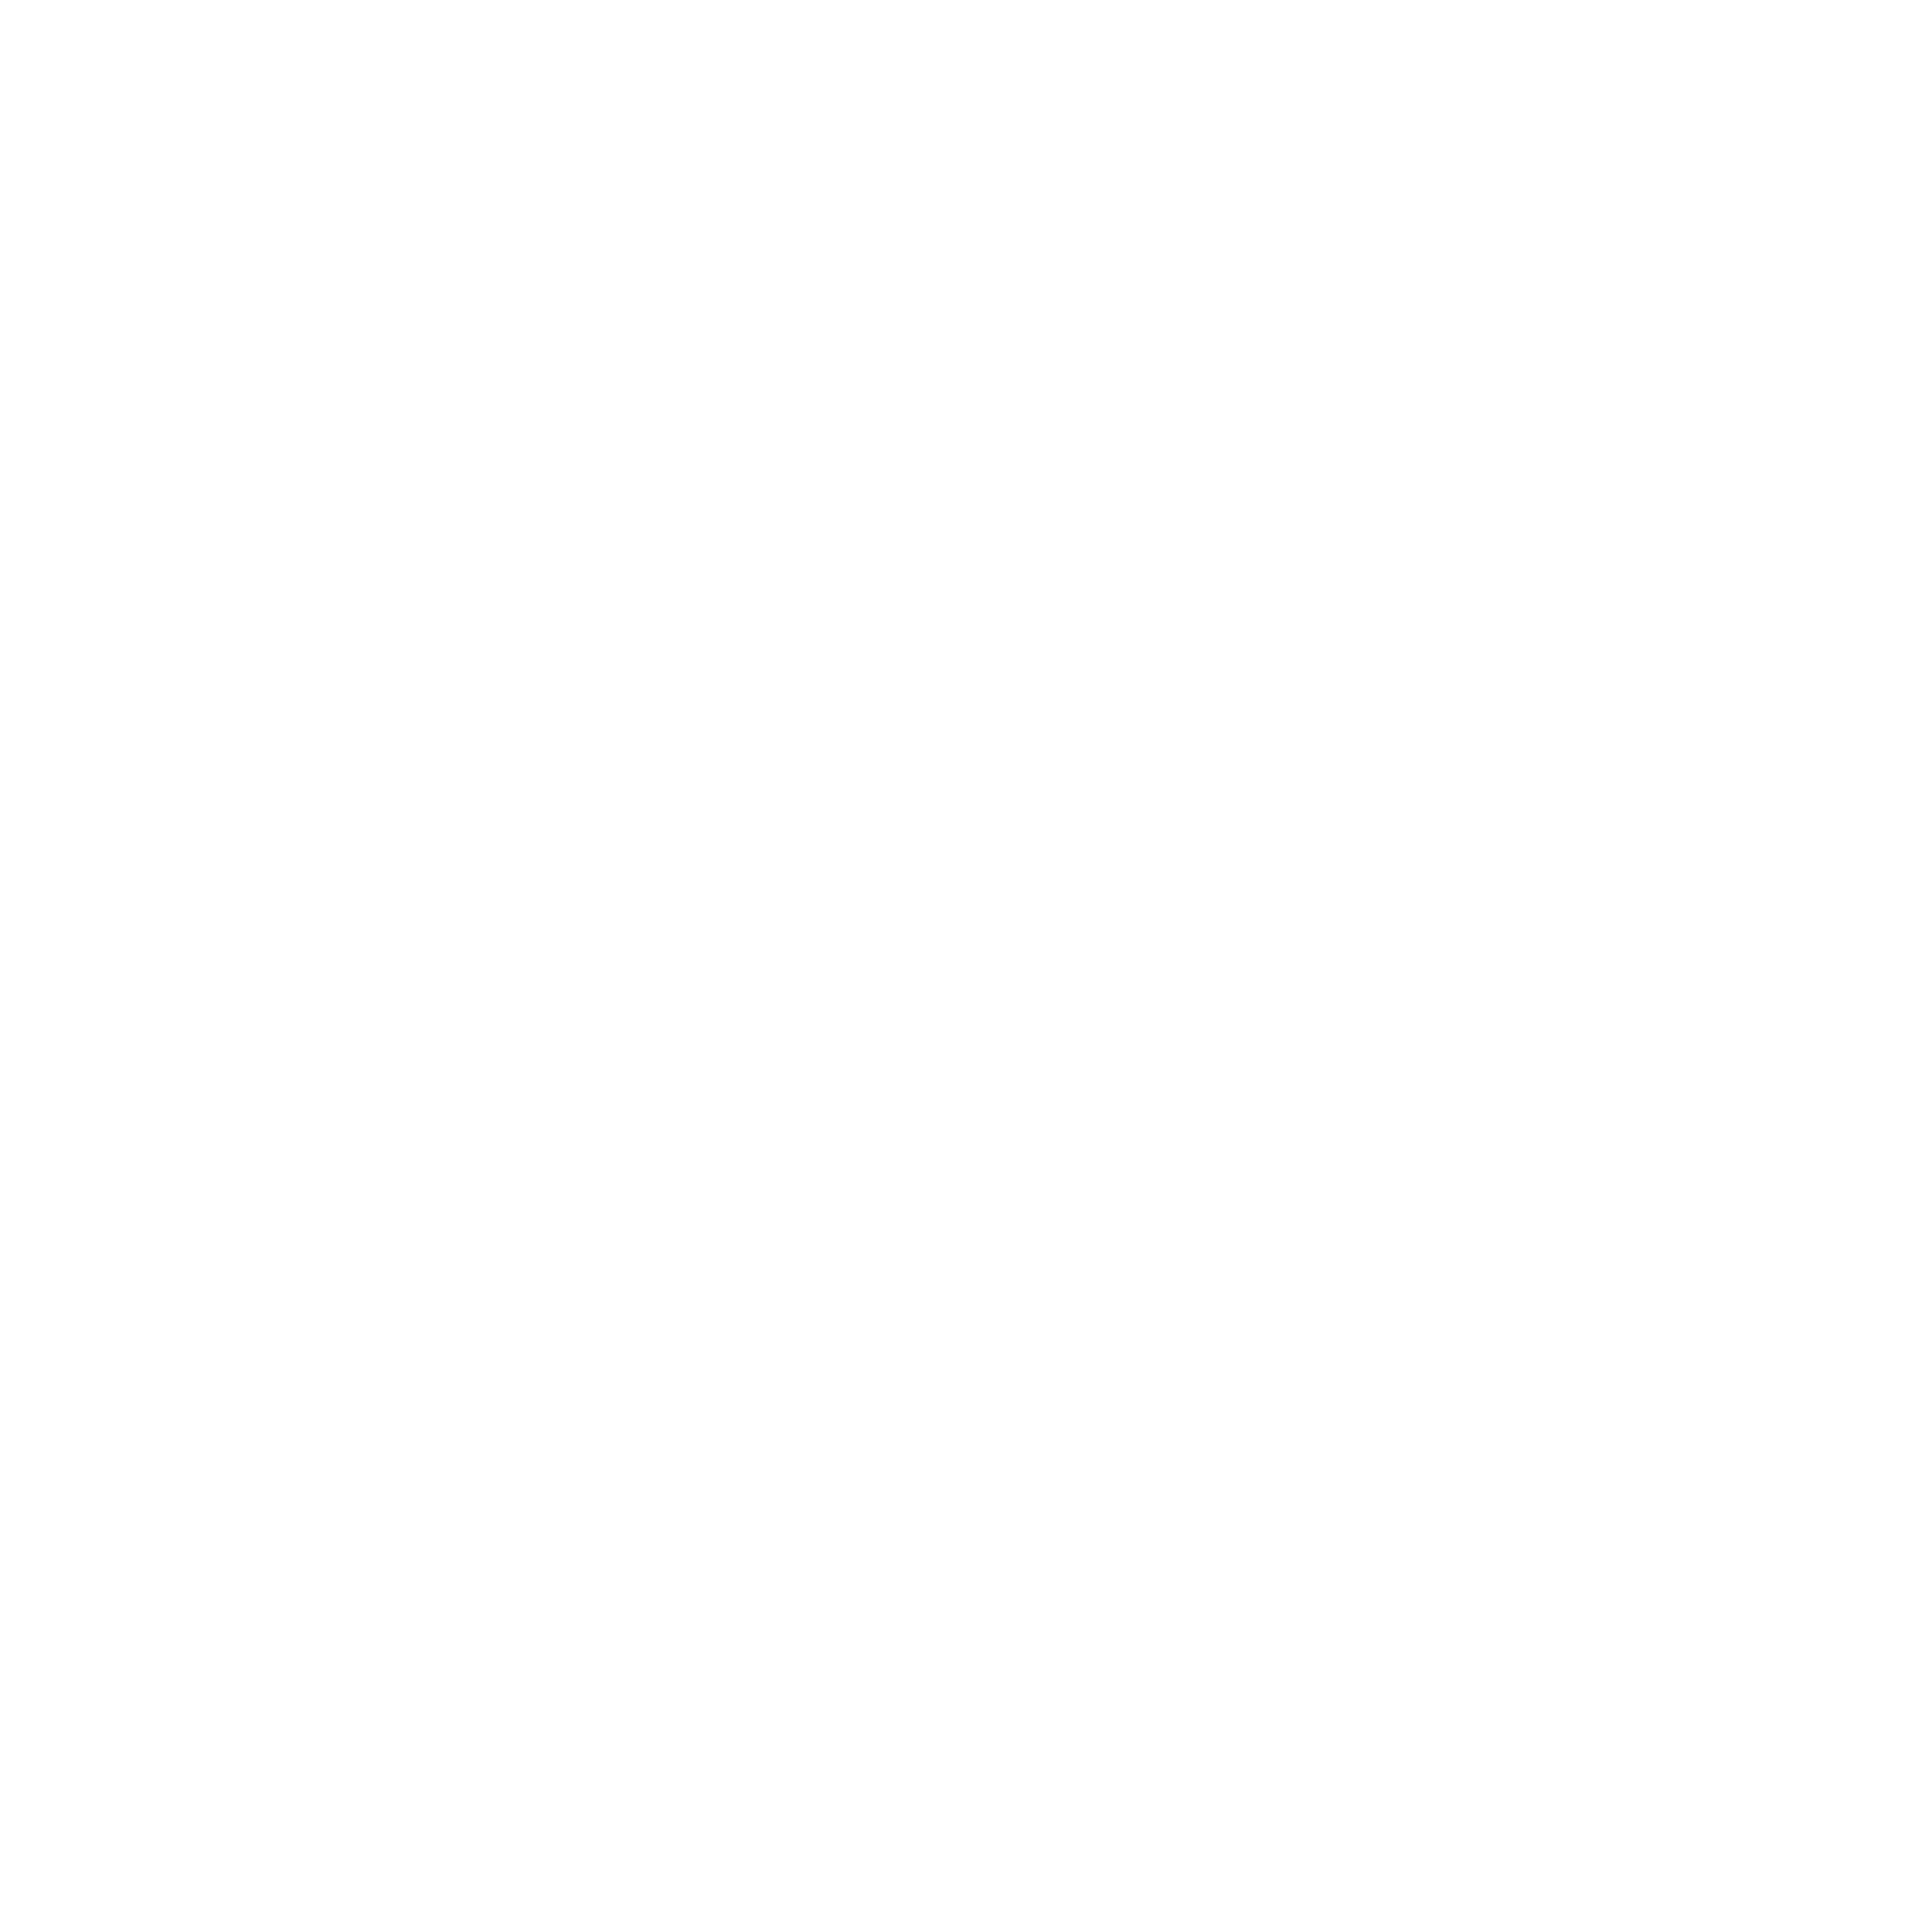 White lace border png. Frame transparent image gallery